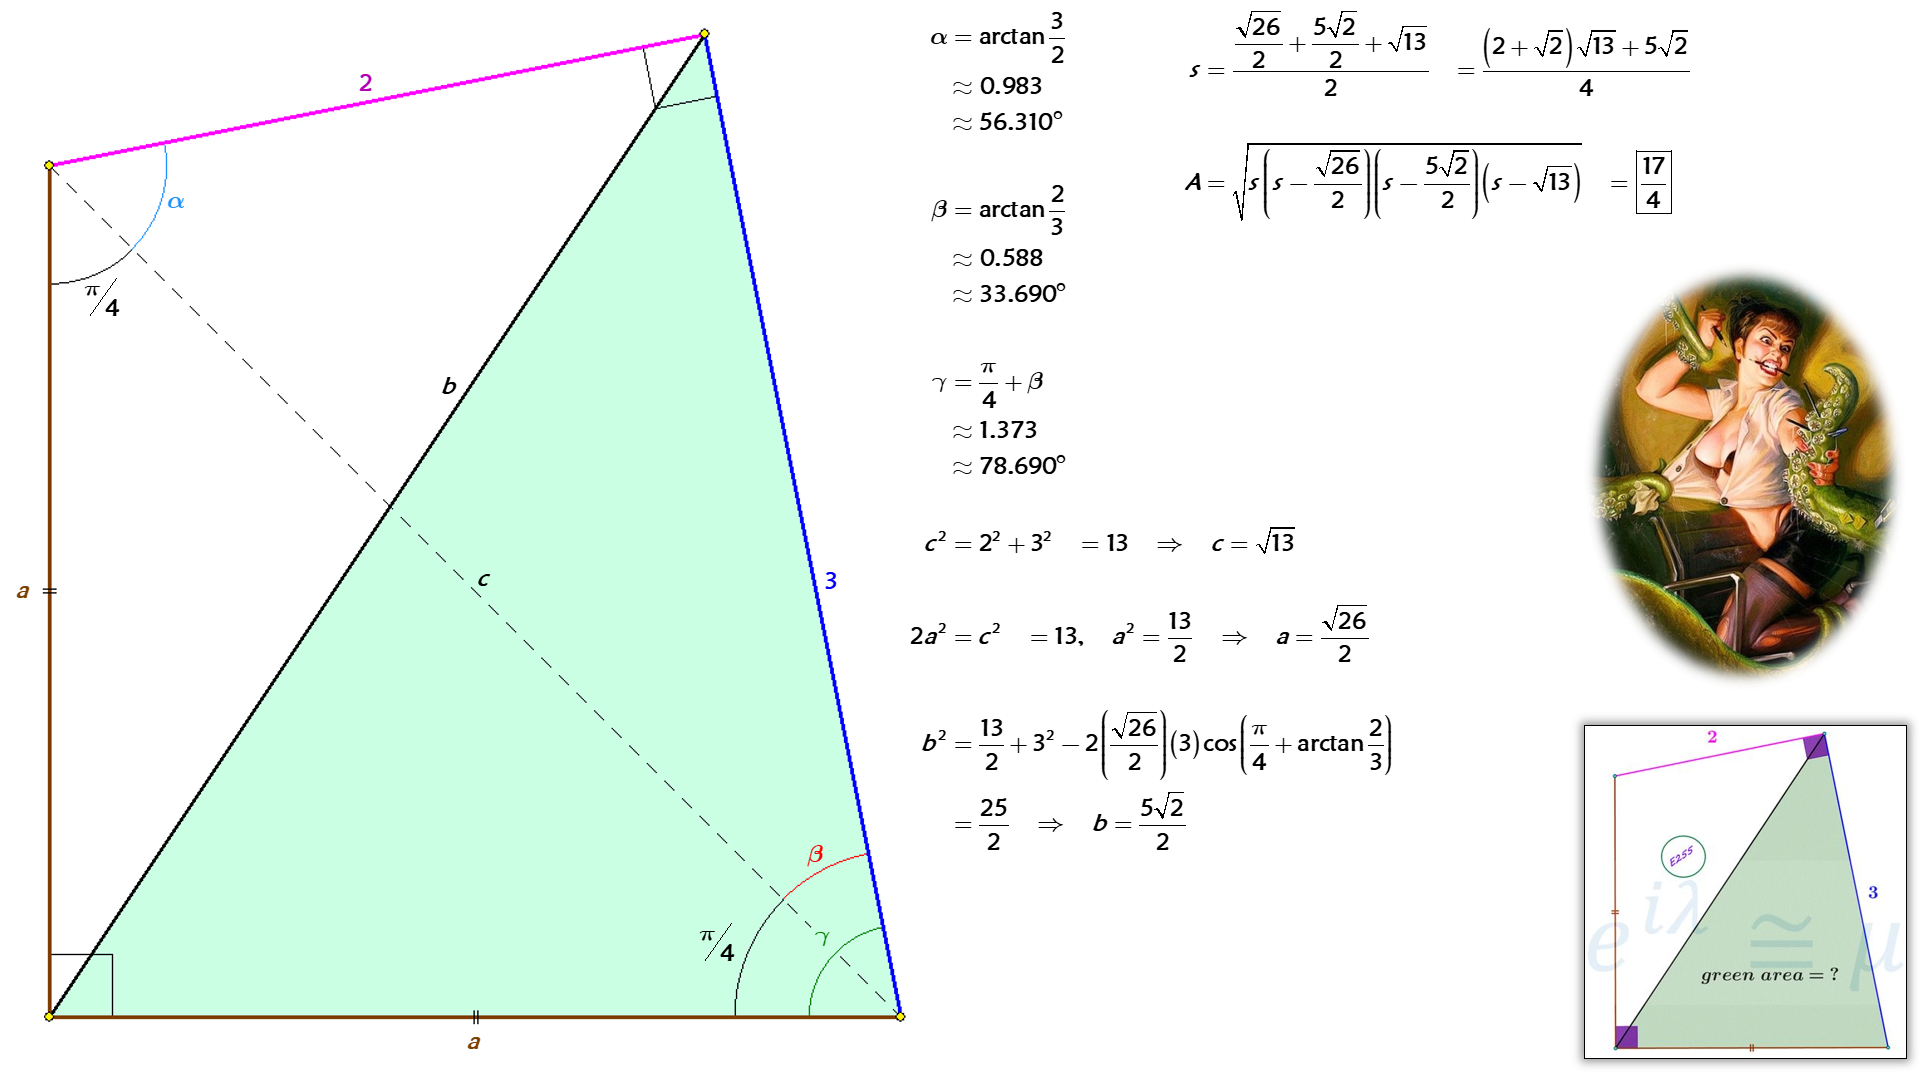 Solved by Pythagorean Theorem, Law of Cosines, and Heron's